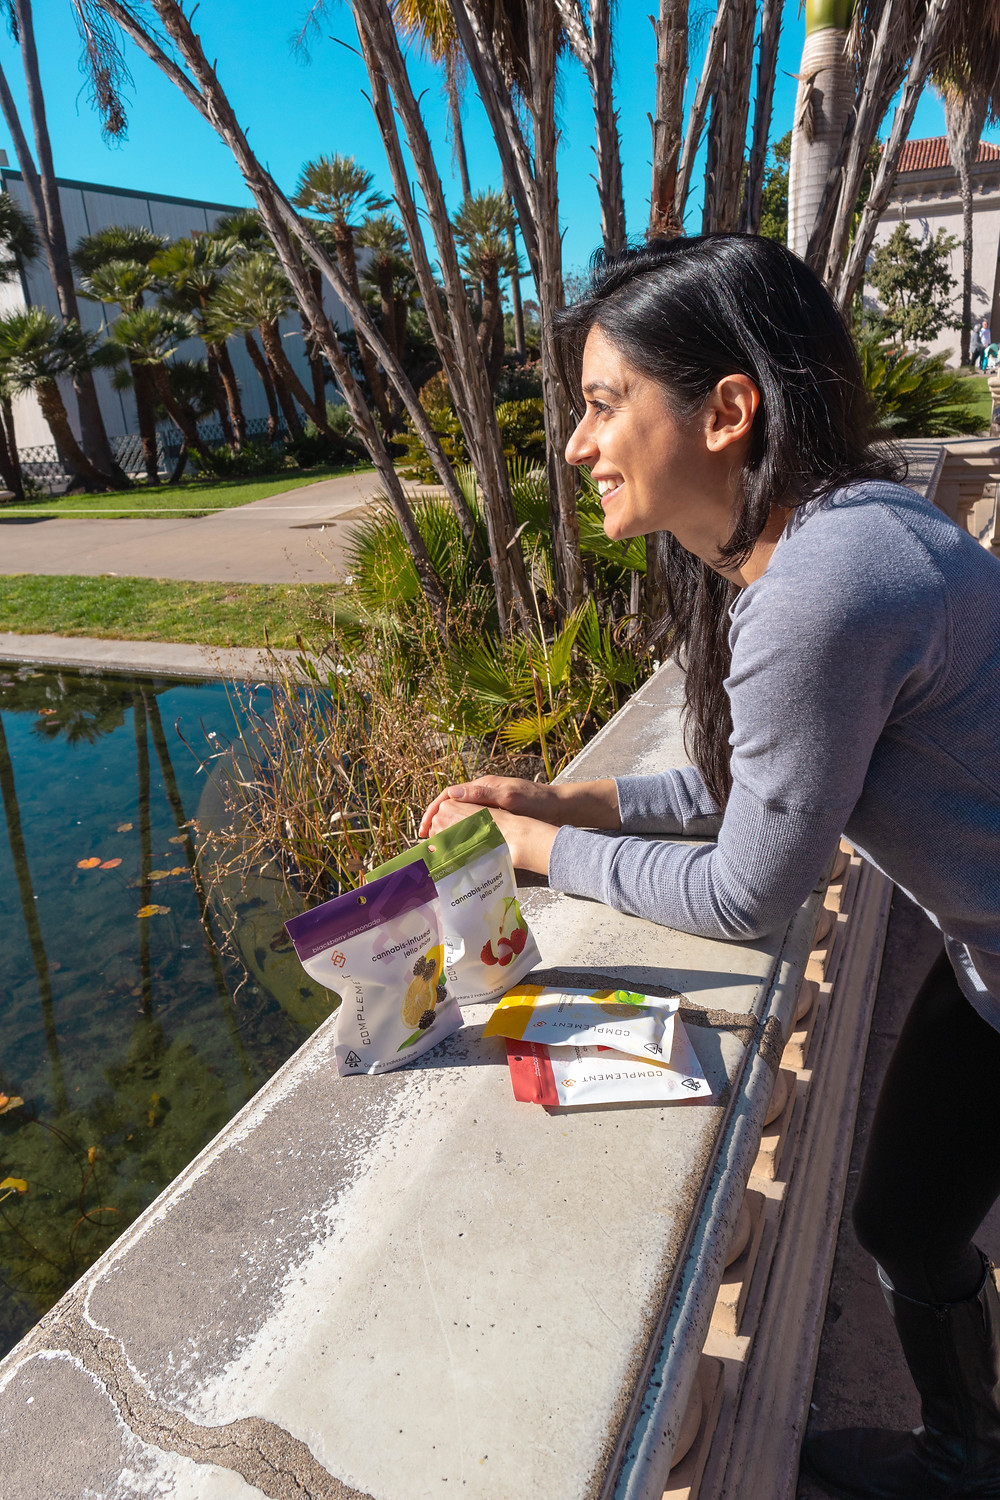 Founder, Jignasha Bhakta, at Balboa Park in San Diego with Complement Cannabis canna chewing gum and canna jello shots